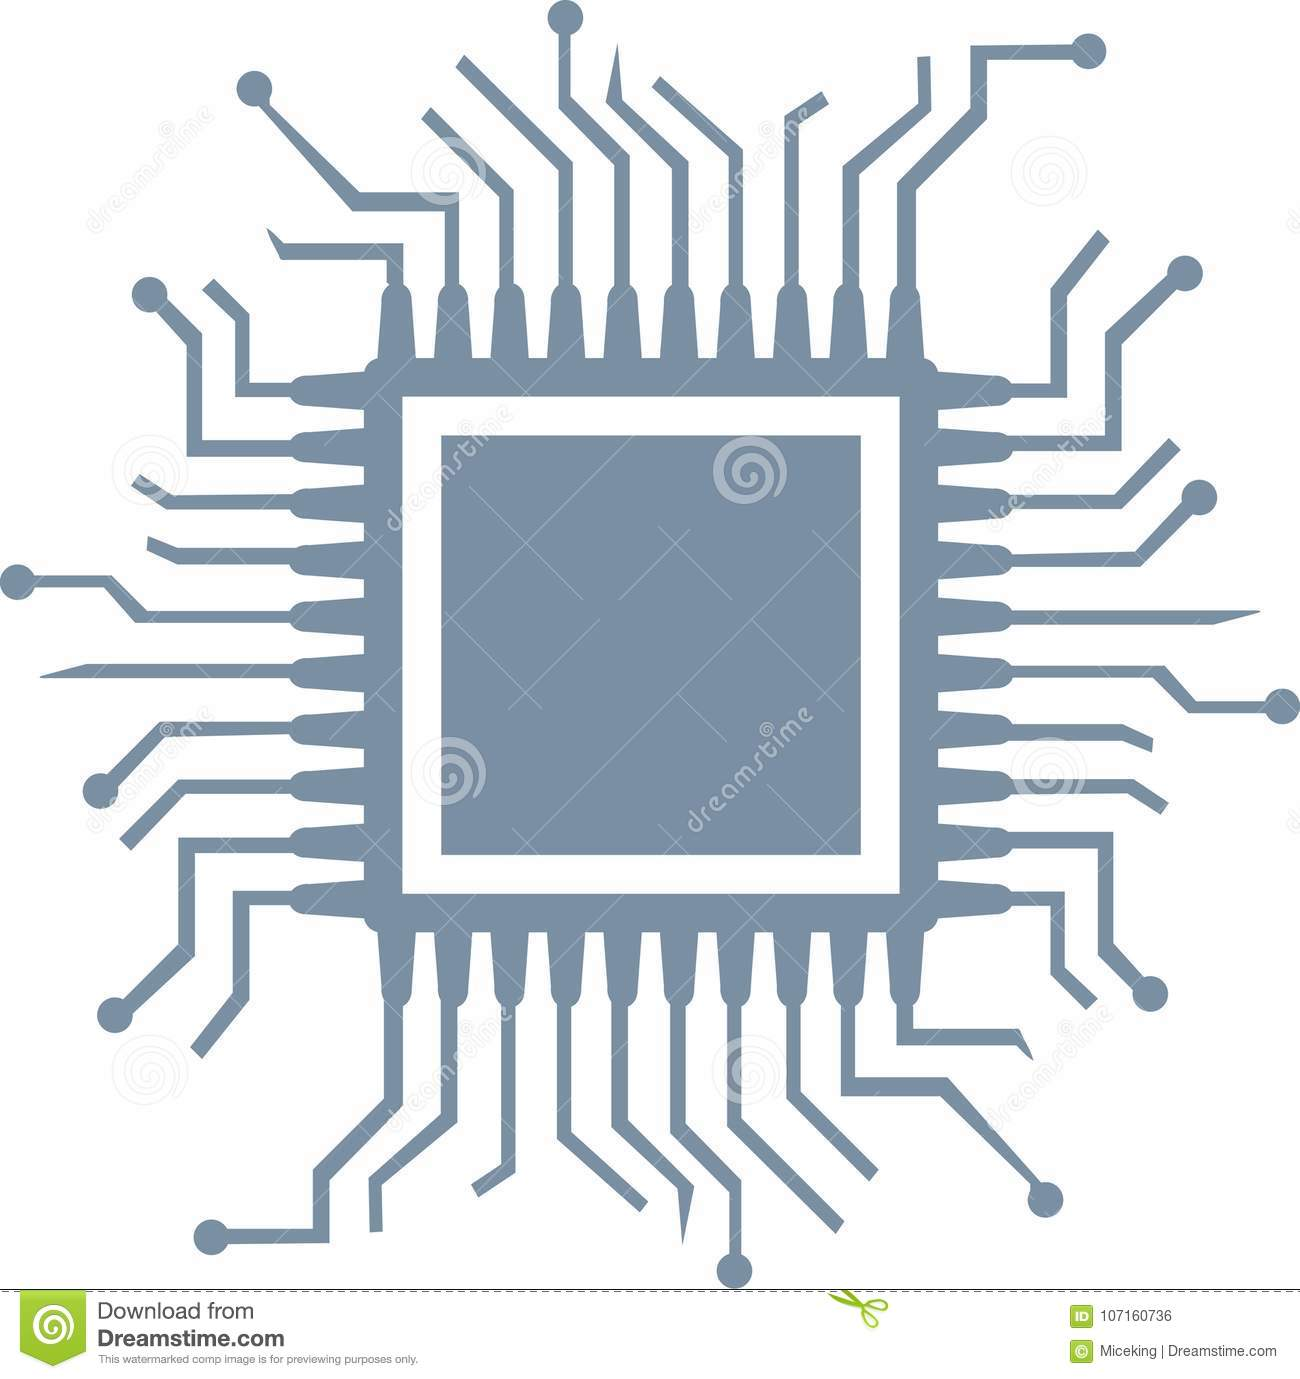 cpu computer chip stock vector illustration of vector 107160736 https www dreamstime com cpu computer chip cpu computer chip hardware vector image107160736